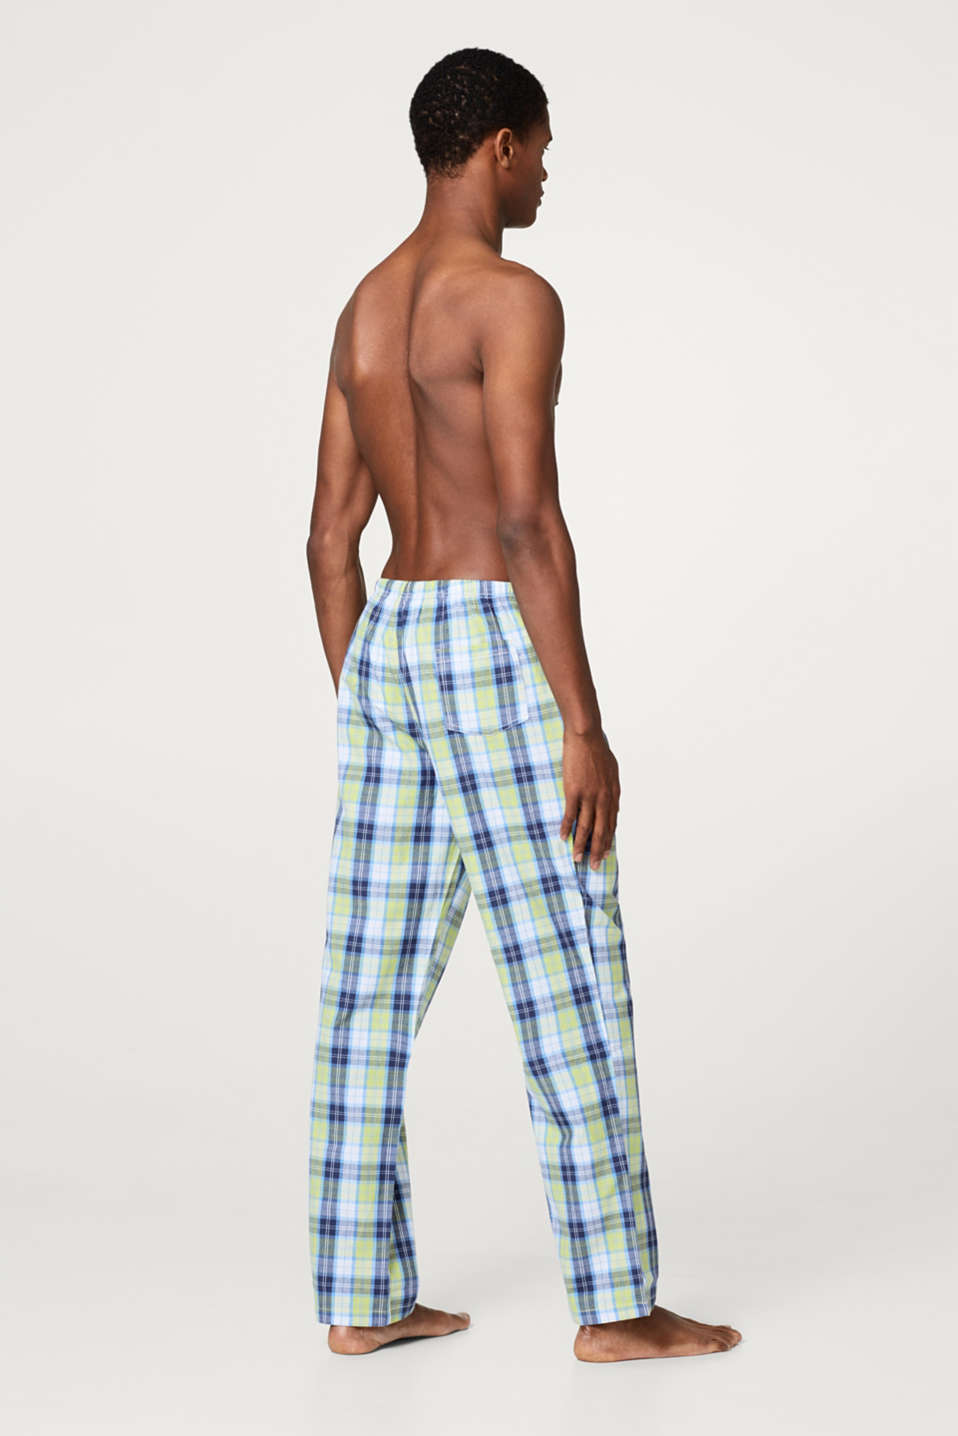 Pyjama bottoms with a check pattern, 100% cotton